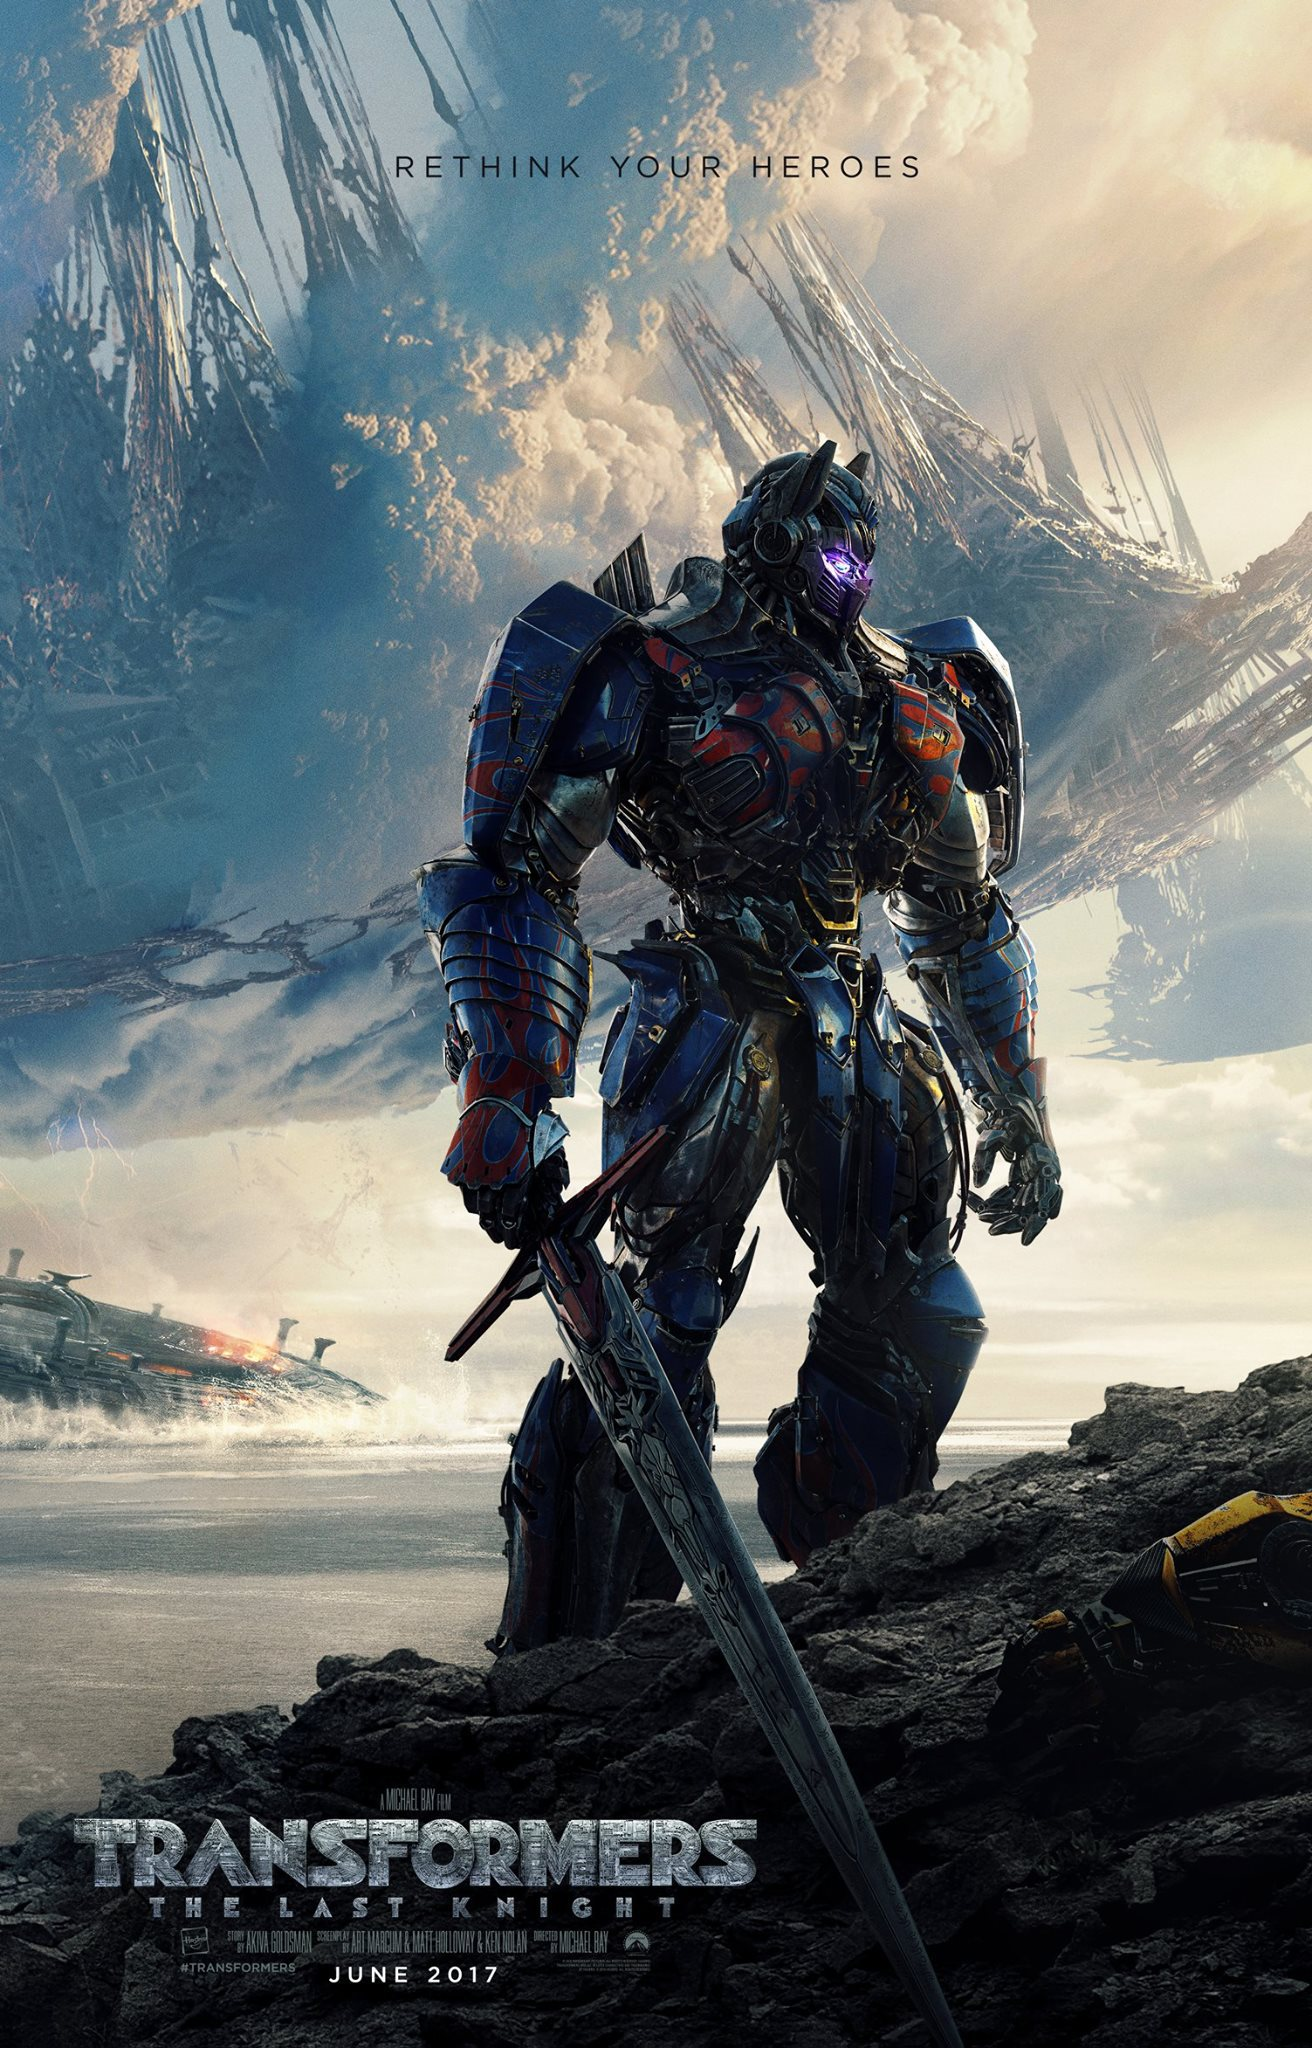 Transformers poster